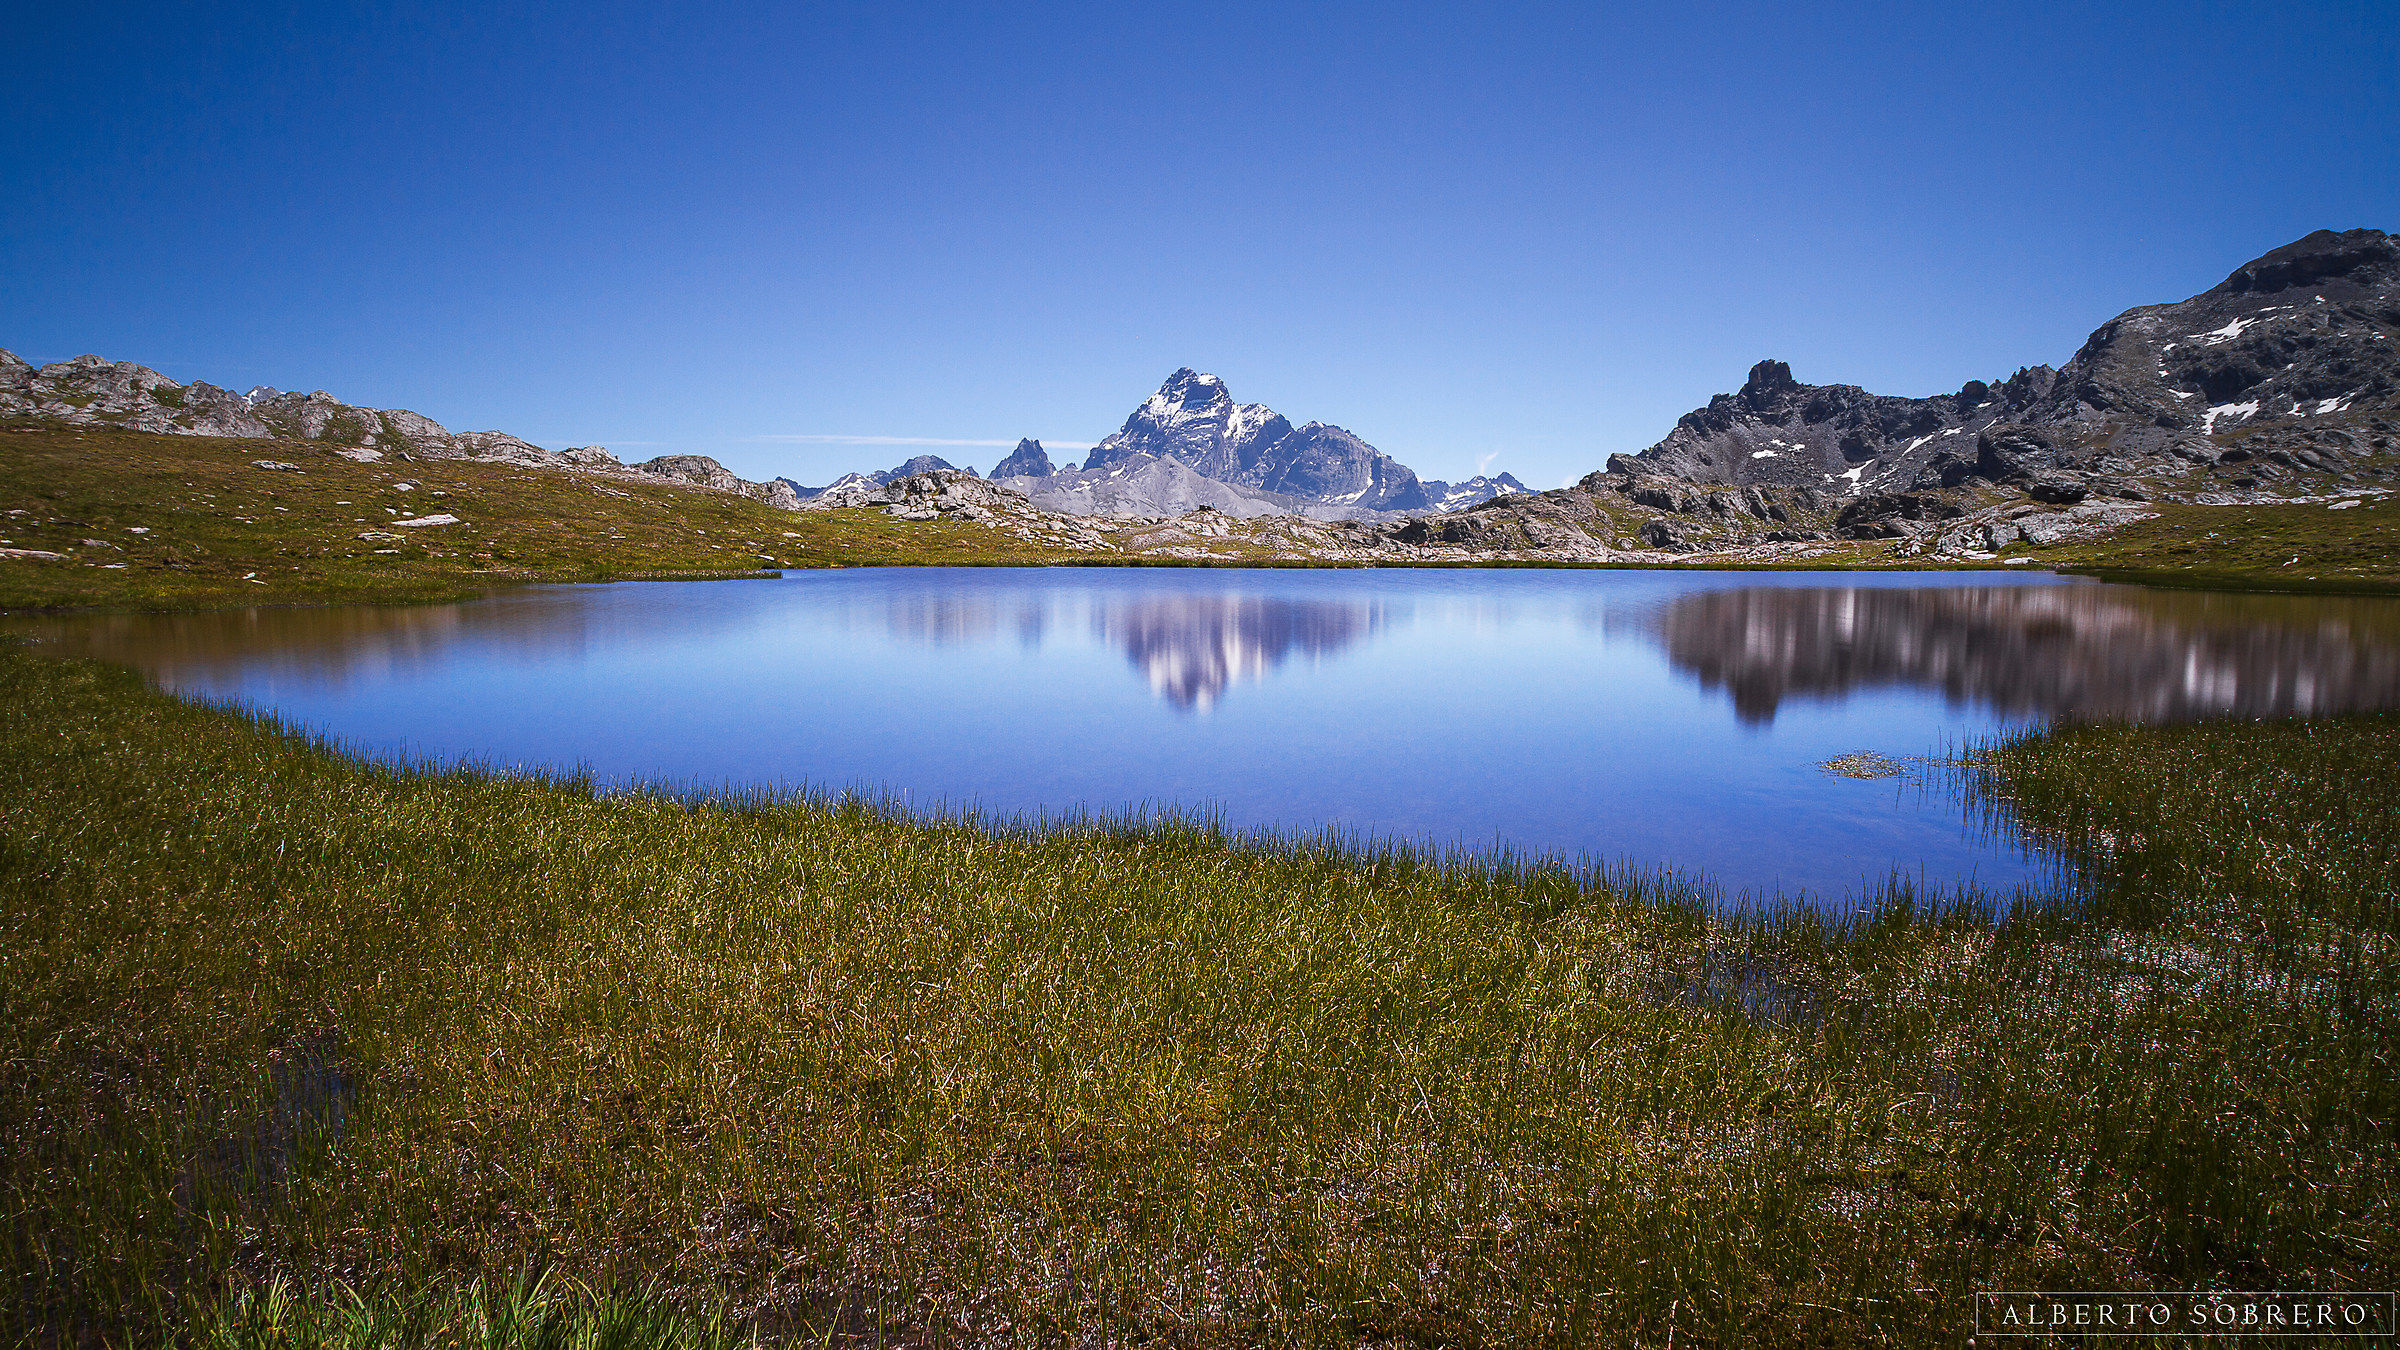 Viso Tour and Real are reflected in Lago Longet...